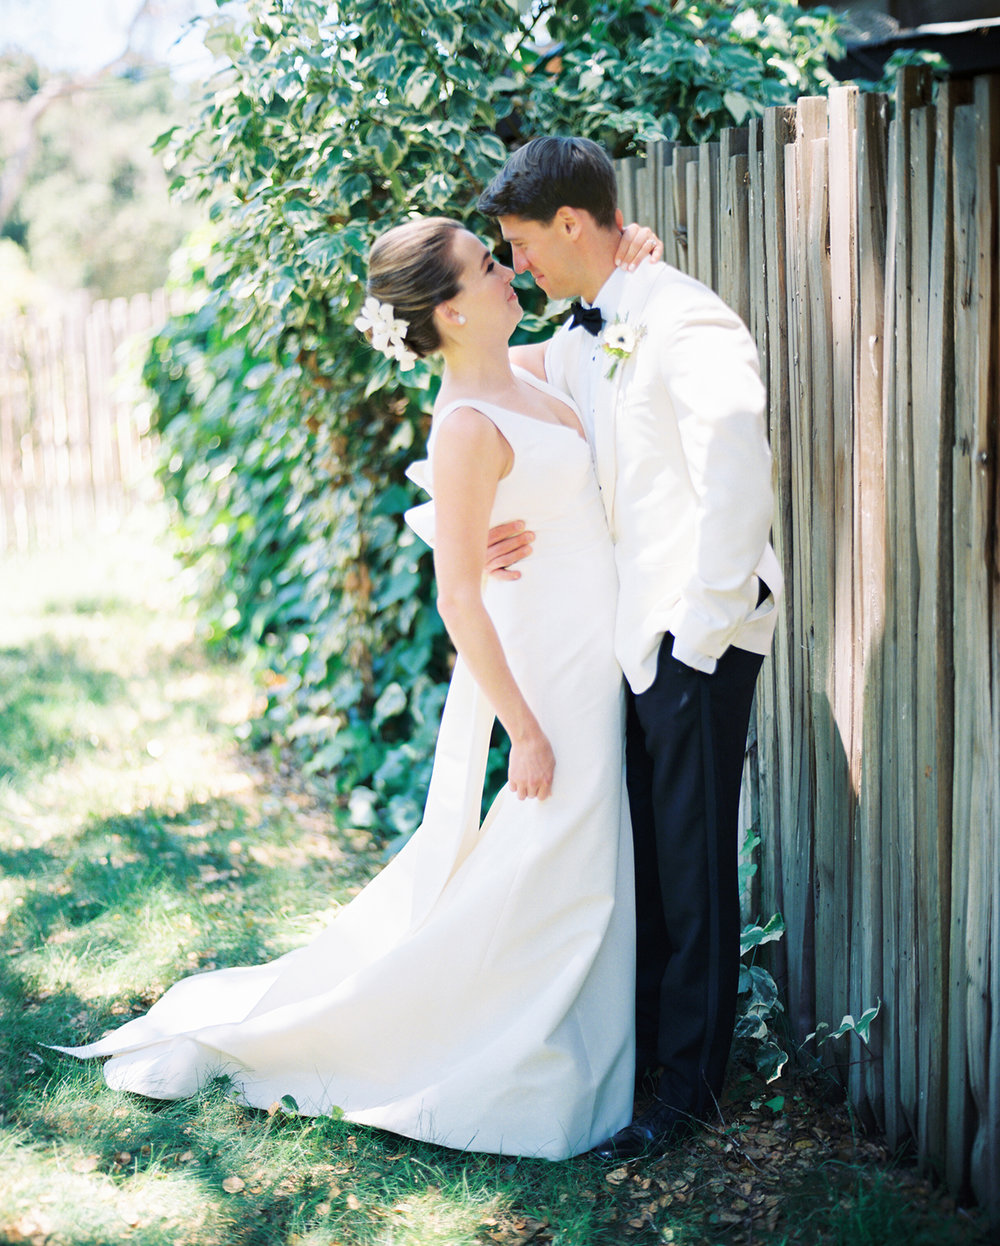 Brauer - Bride & Groom 007.jpg